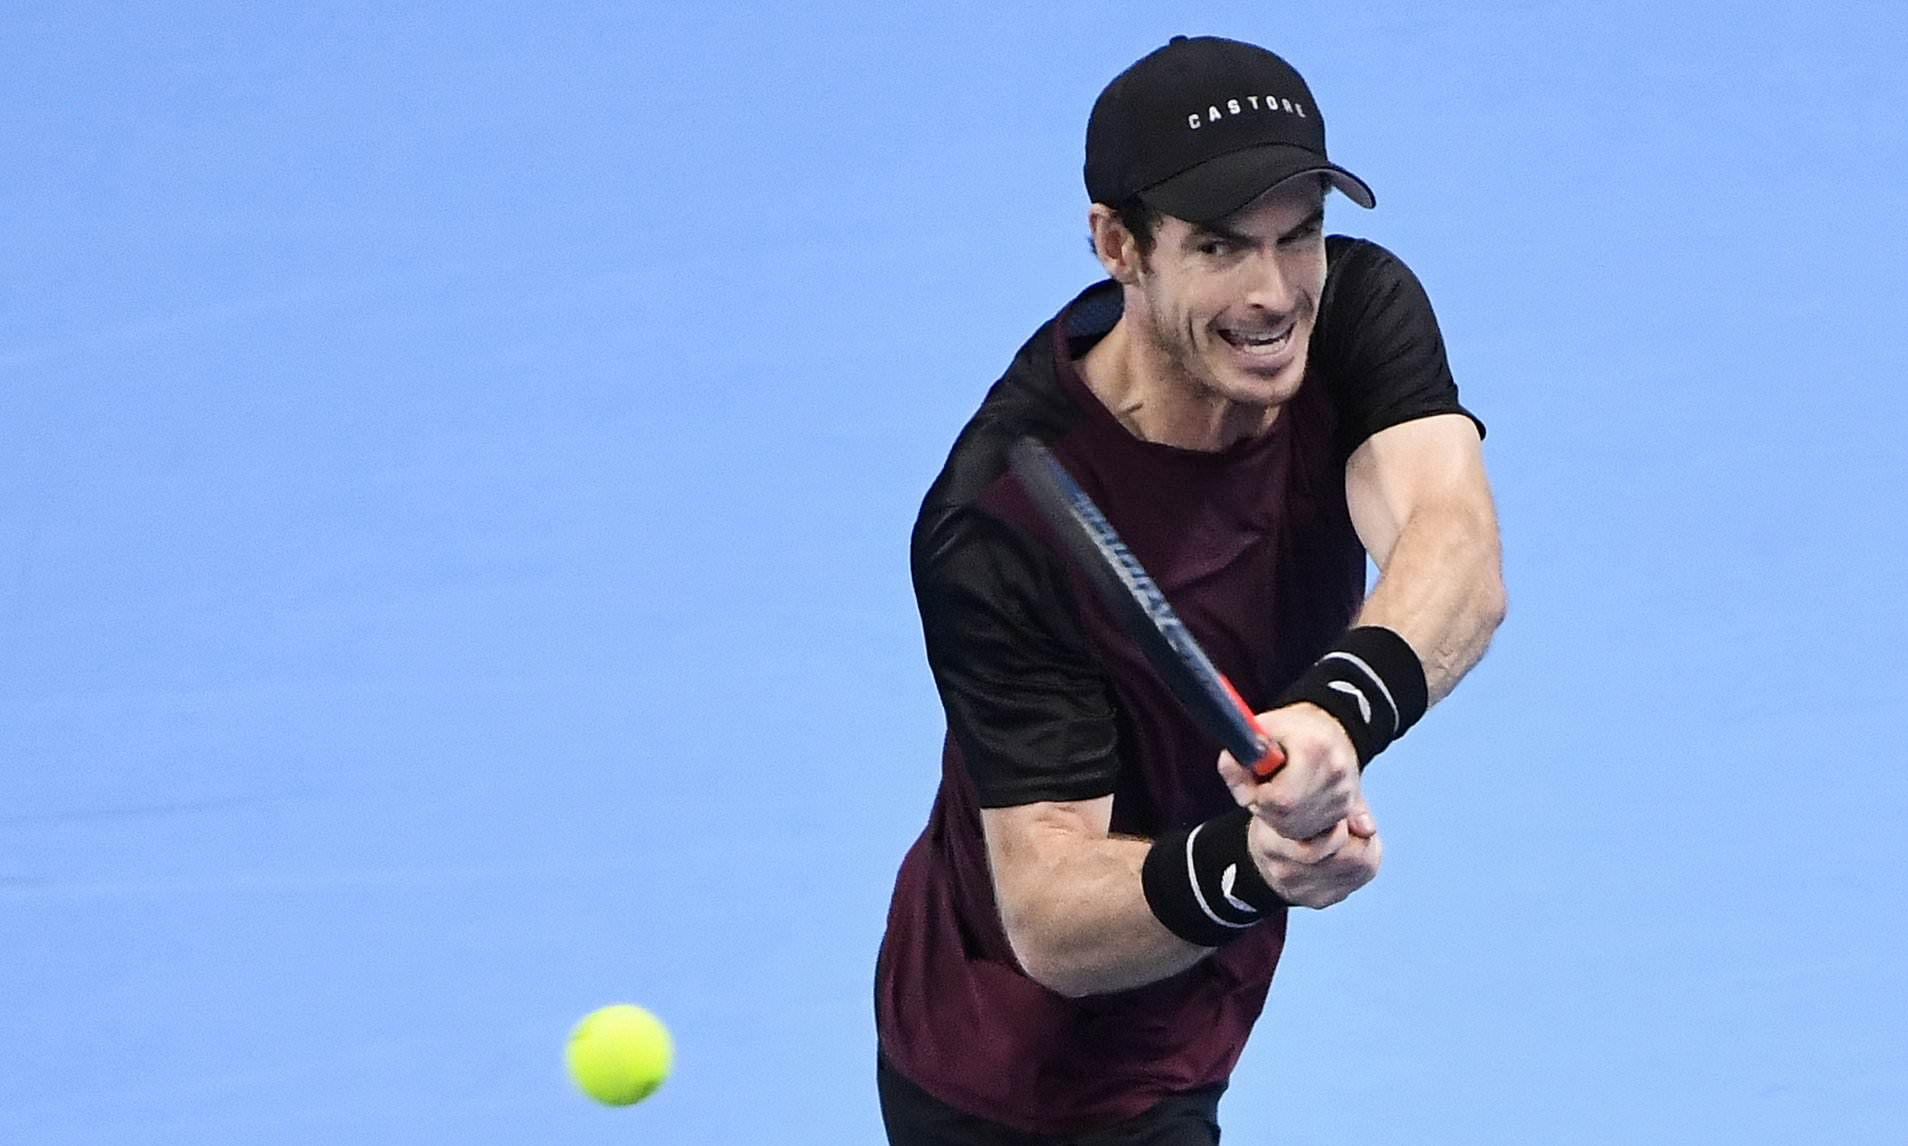 Tennis News: Coronavirus Threat Hits Andy Murray's Return Plana